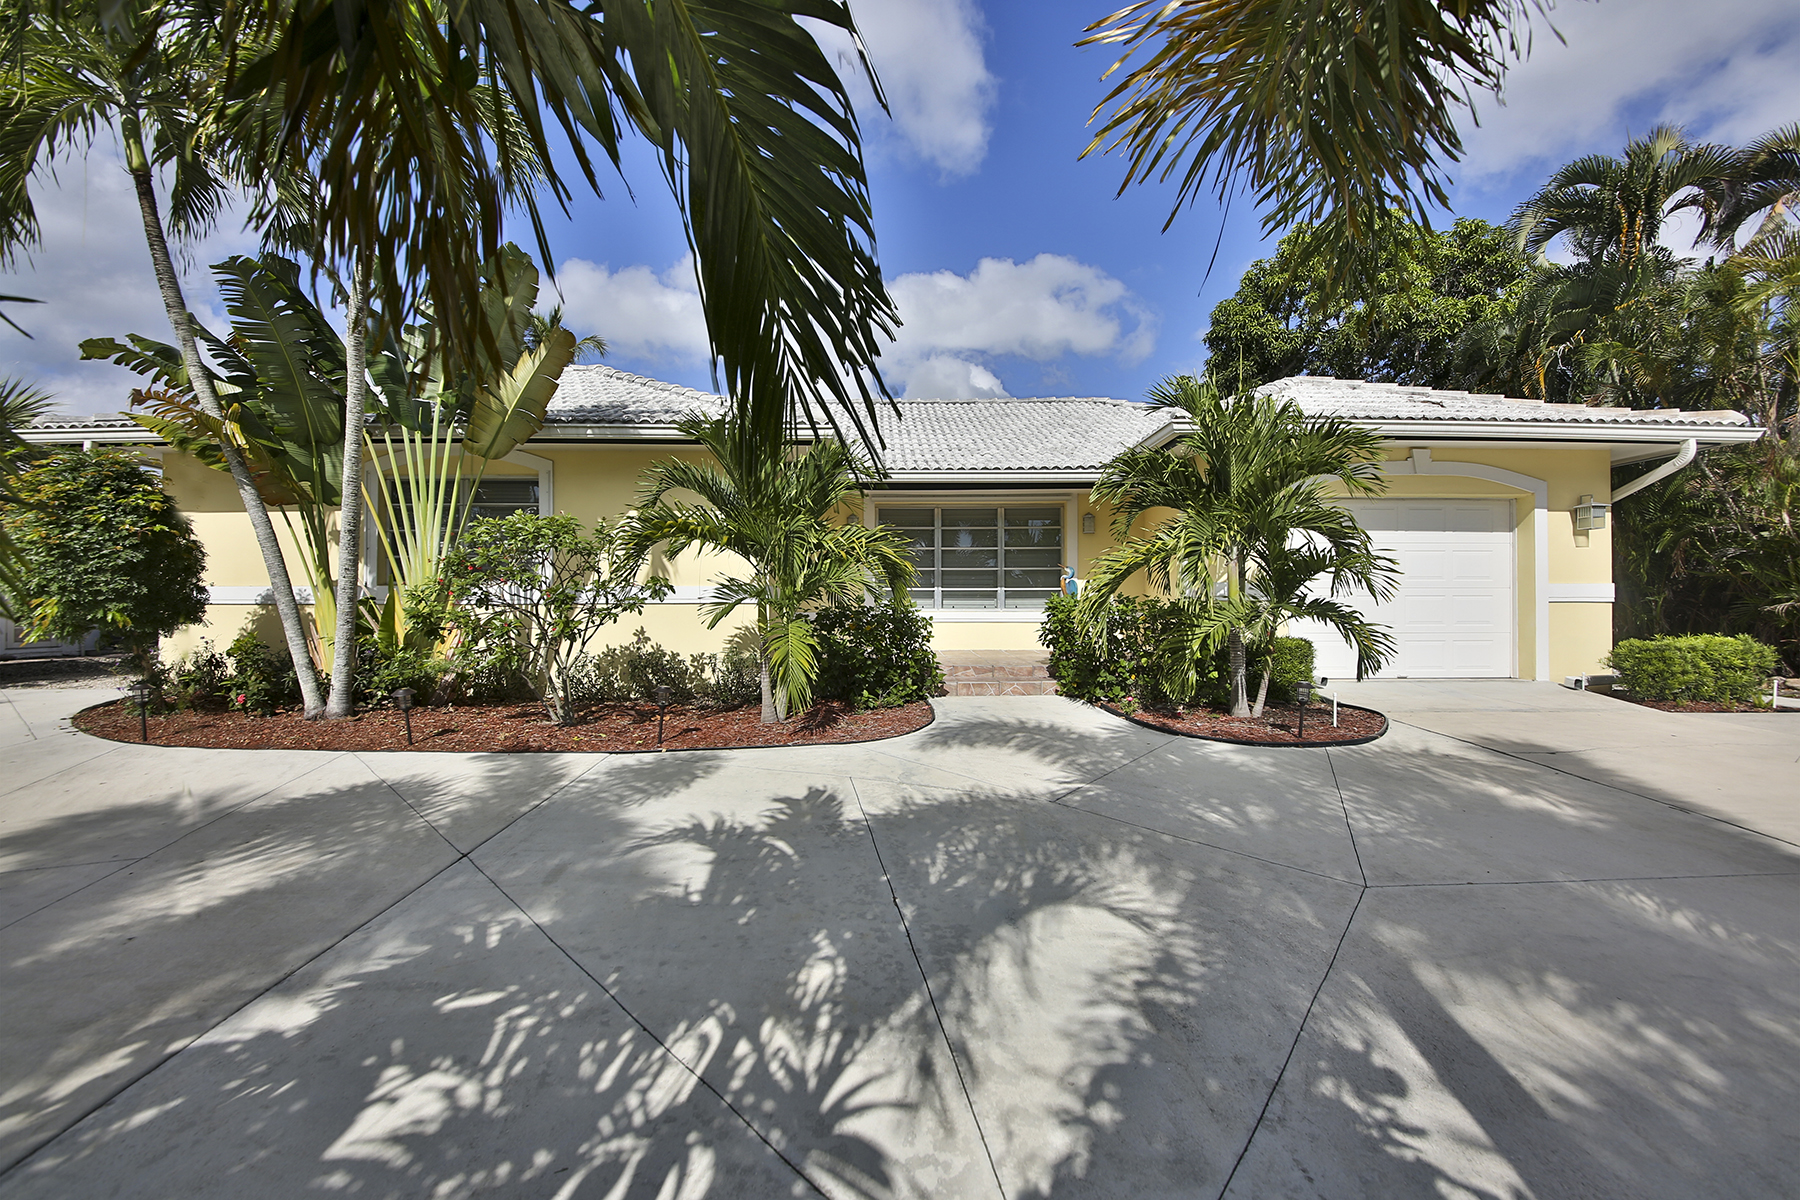 Single Family Home for Sale at MARCO ISLAND 1260 N Collier Blvd Marco Island, Florida, 34145 United States